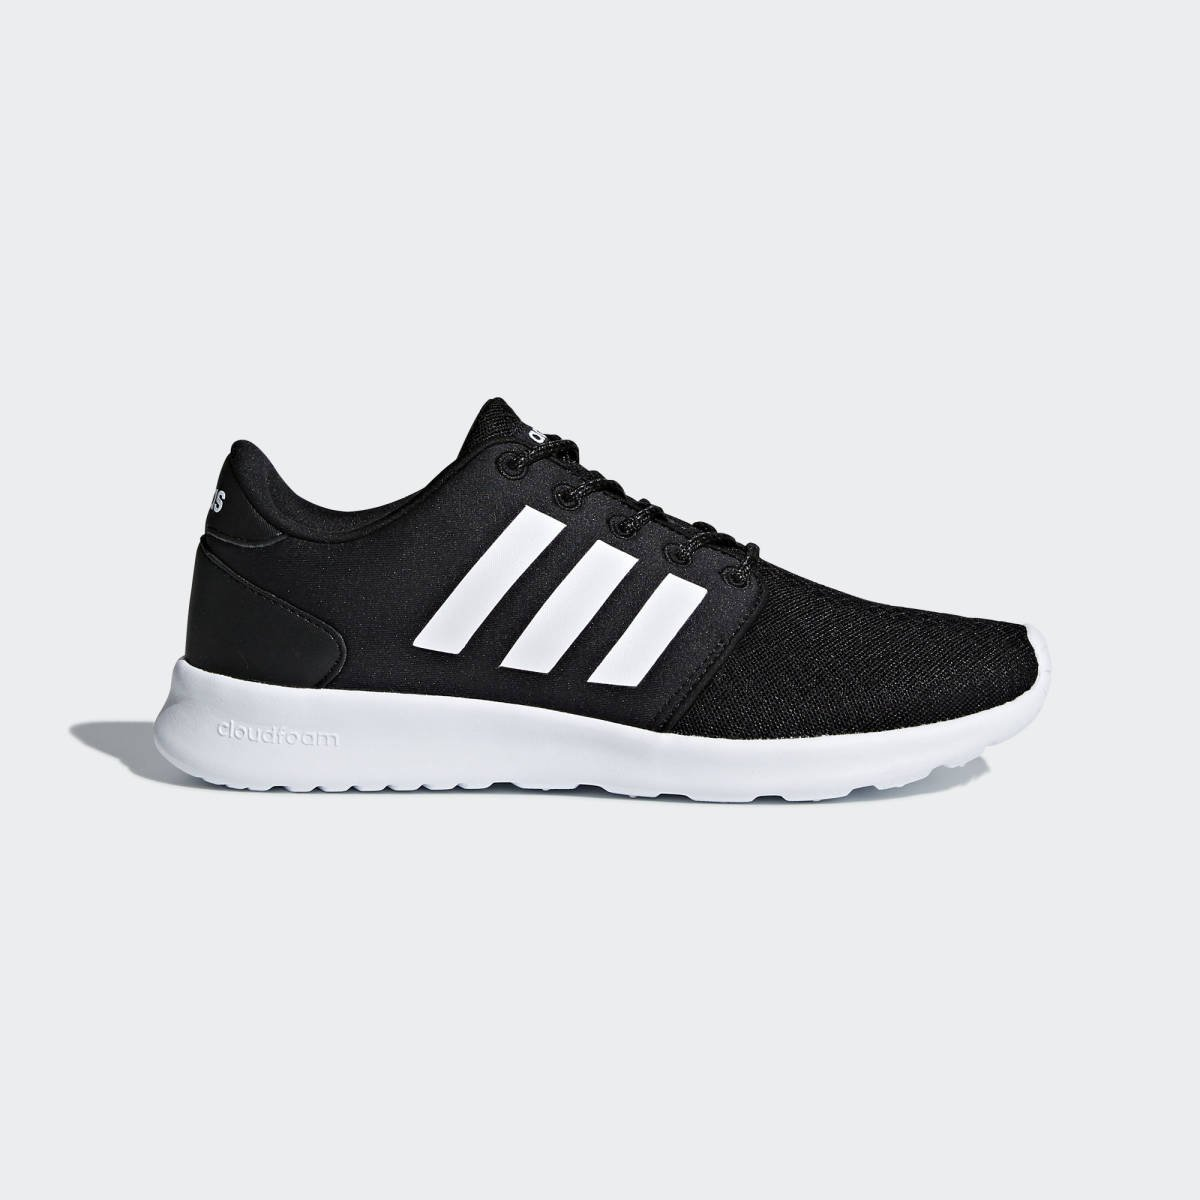 adidas originals cloudfoam qt racer db0275. Black Bedroom Furniture Sets. Home Design Ideas